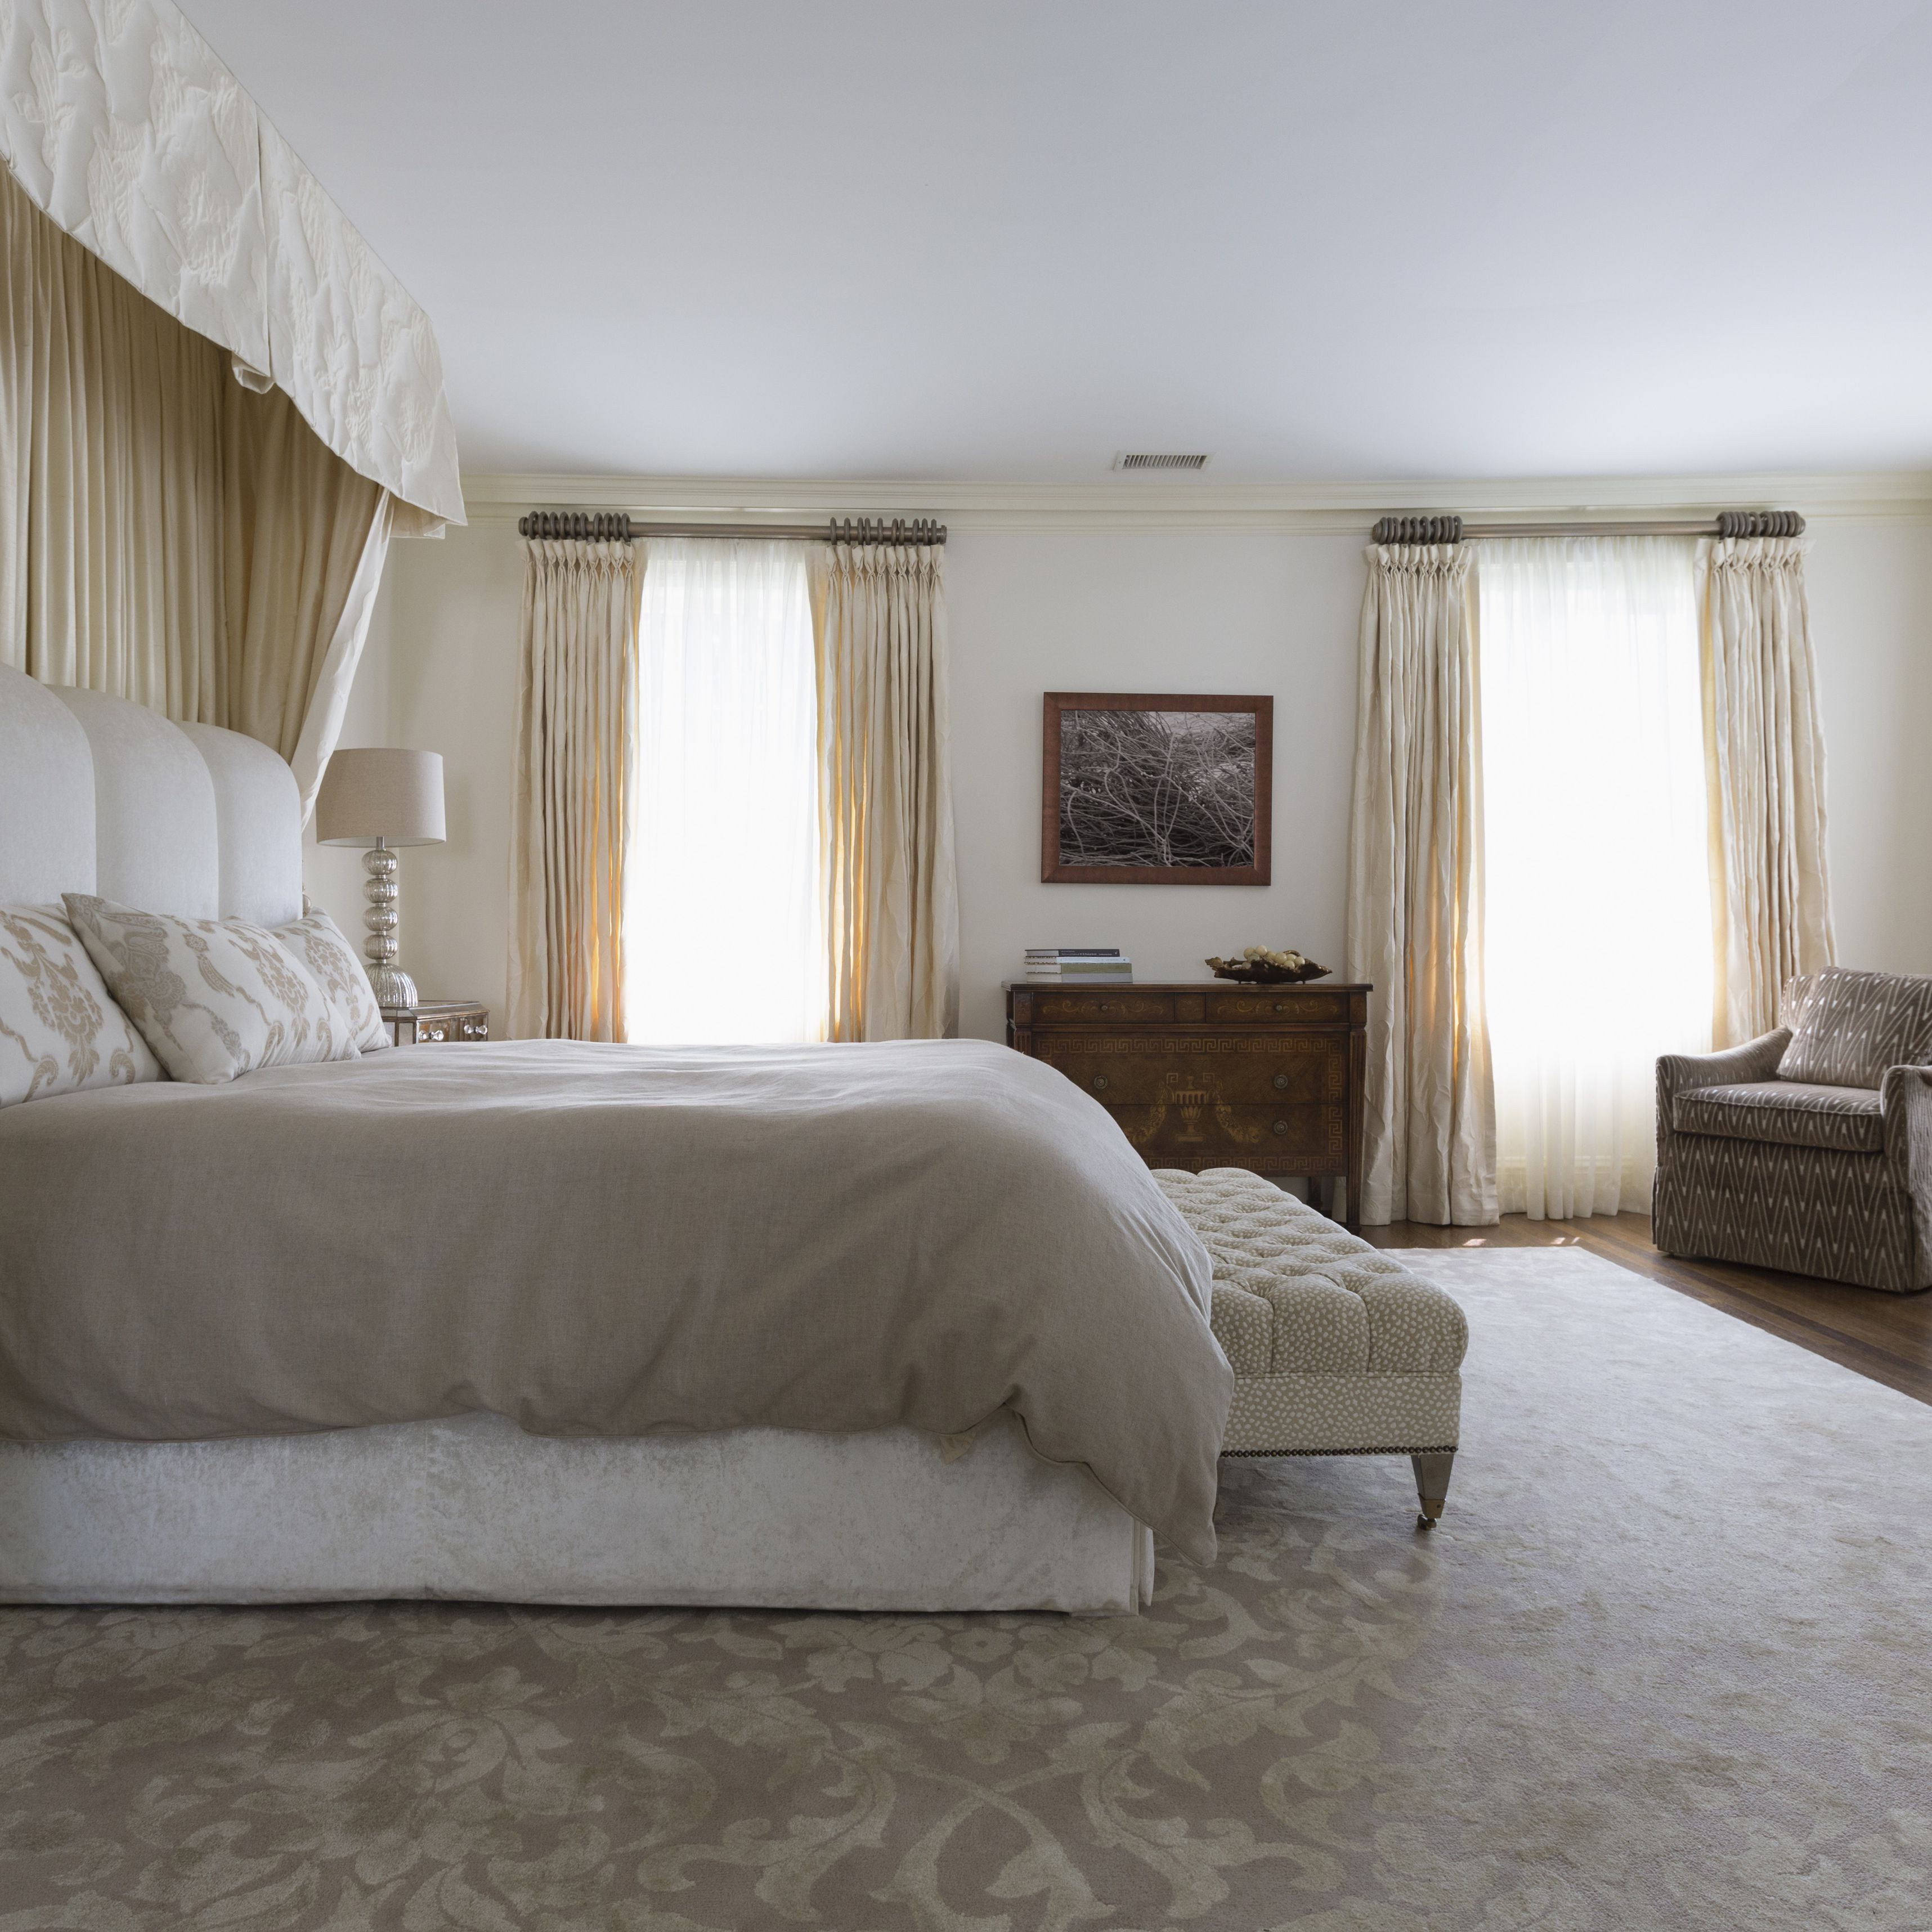 Area Rug for Bedroom Size Luxury How to Choose the Right area Rug for Under Your Bed